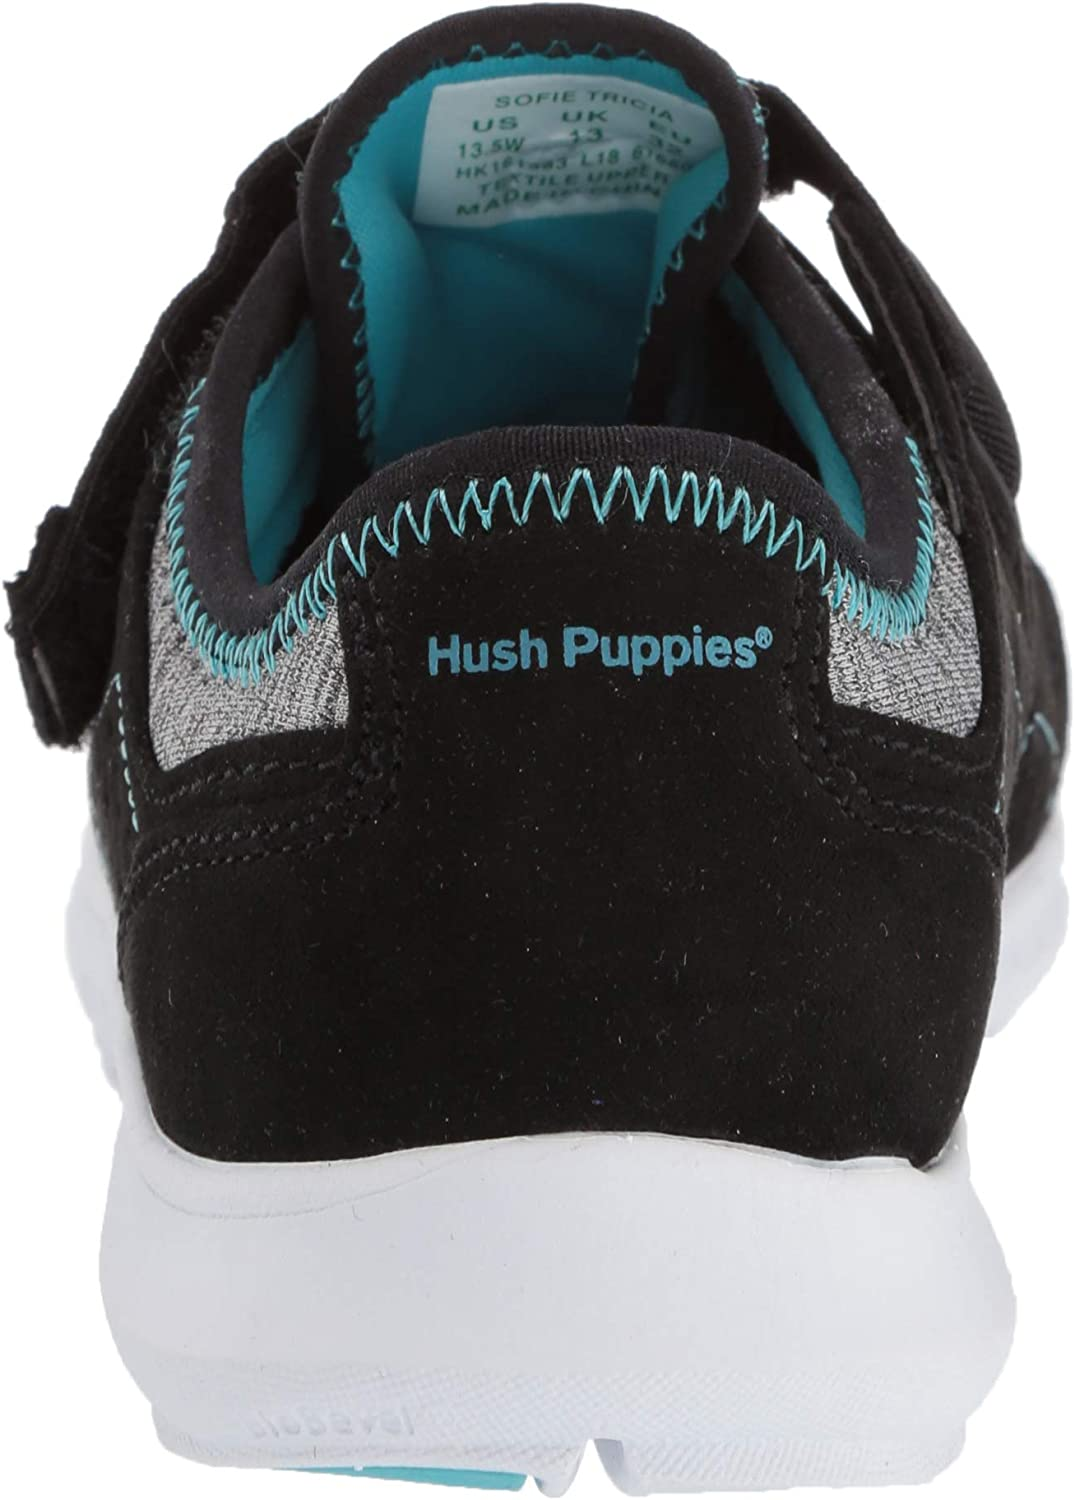 Hush Puppies Kids Sofie Tricia Sneaker